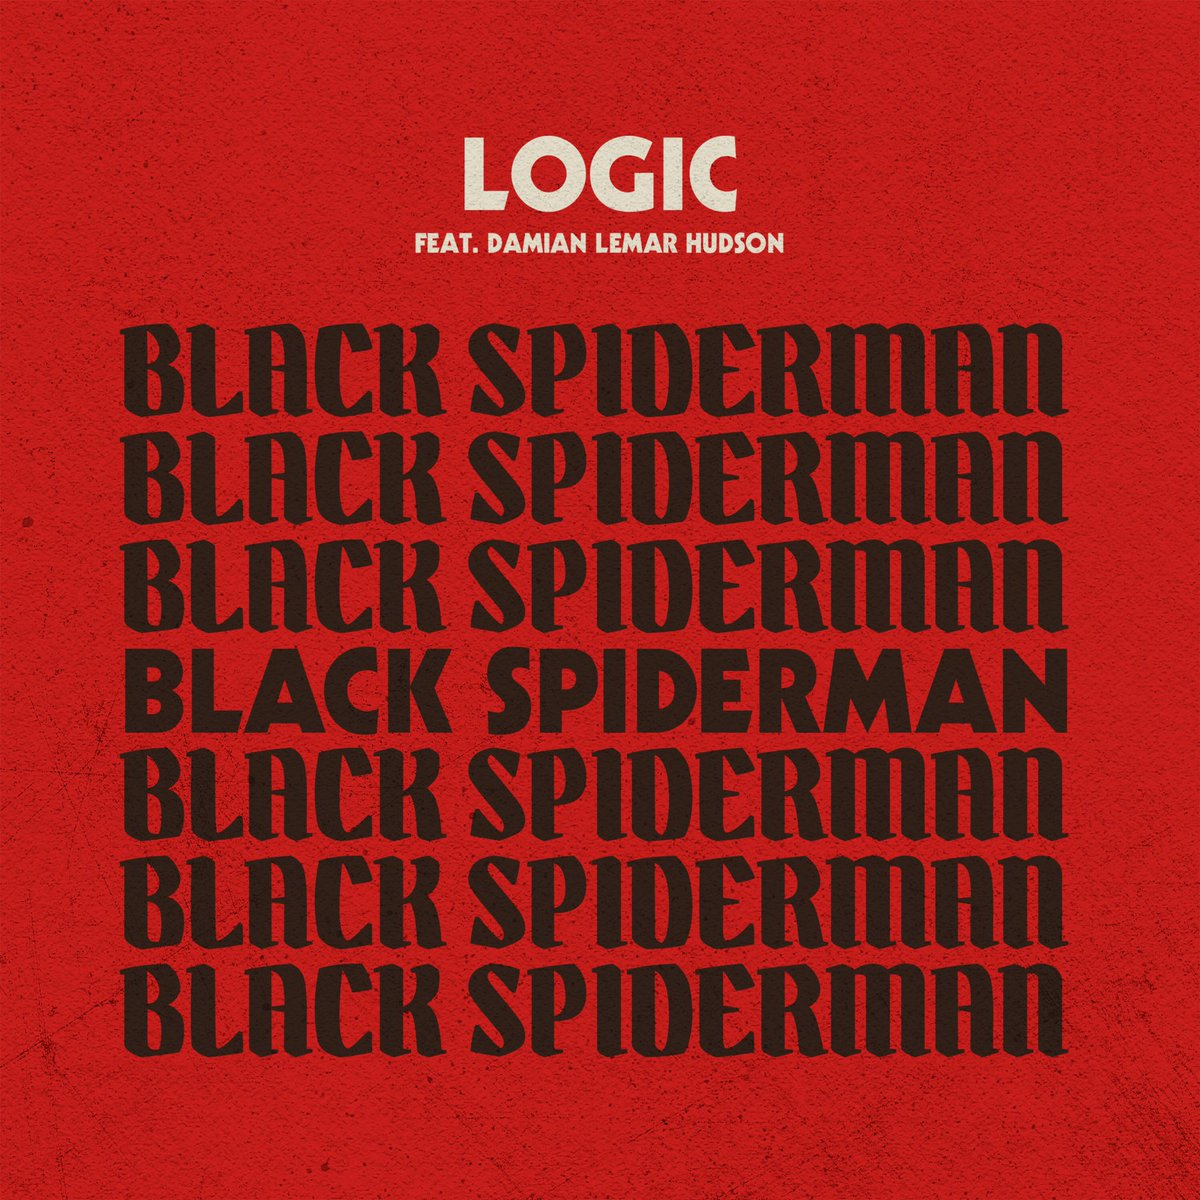 Khalid Song Quotes Wallpaper New Video Logic Black Spiderman Hiphop N More